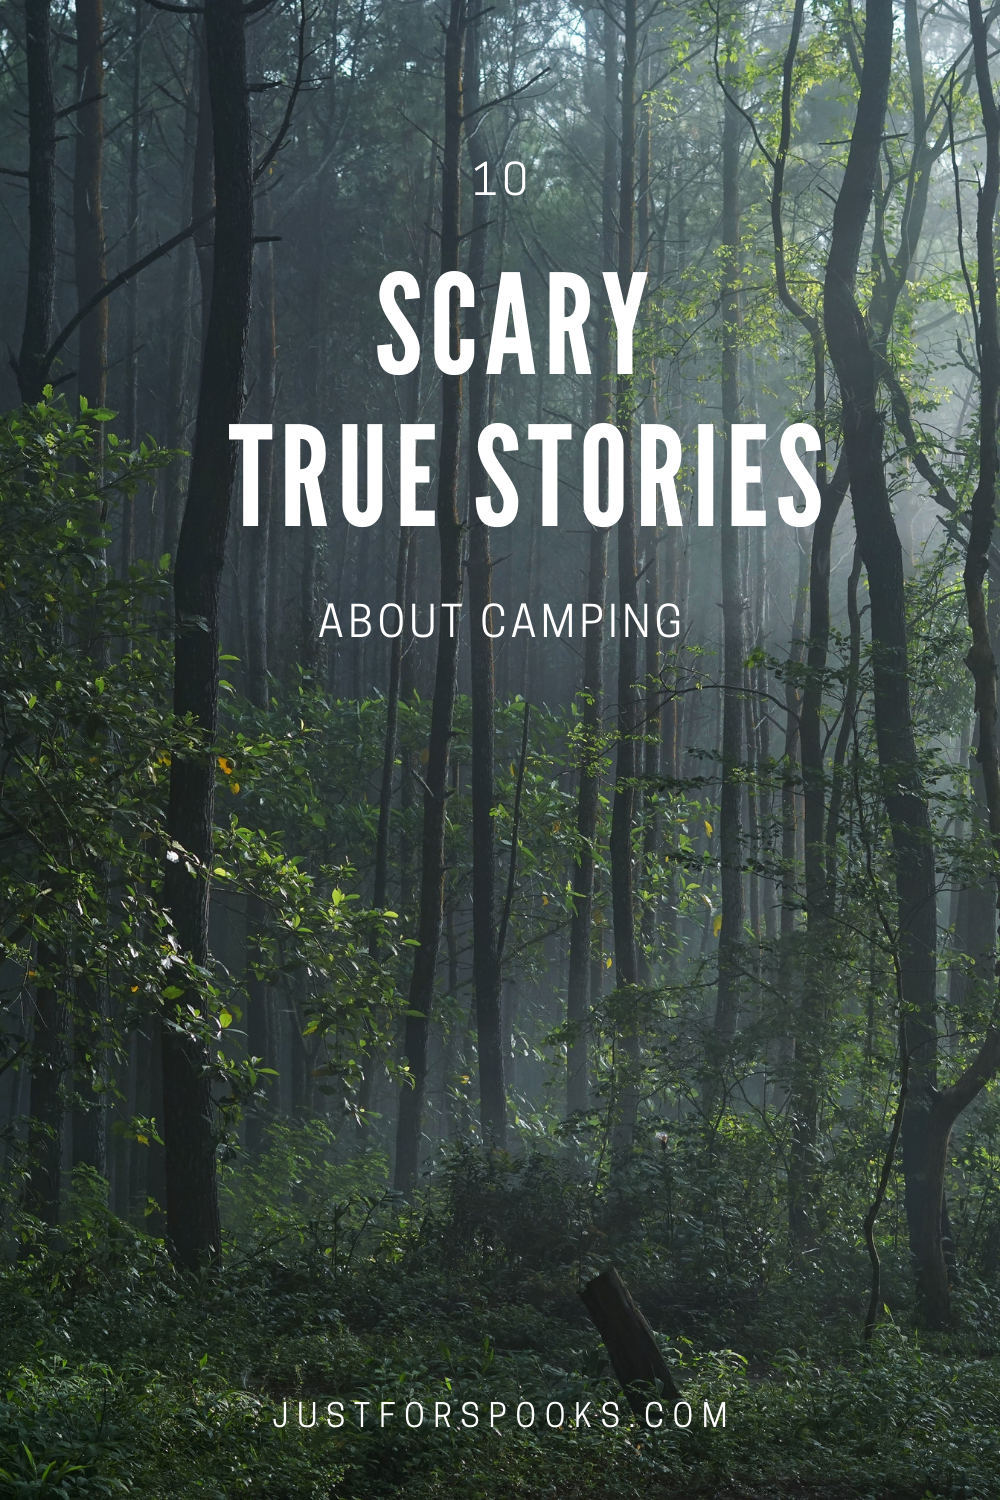 10 scary true stories about camping